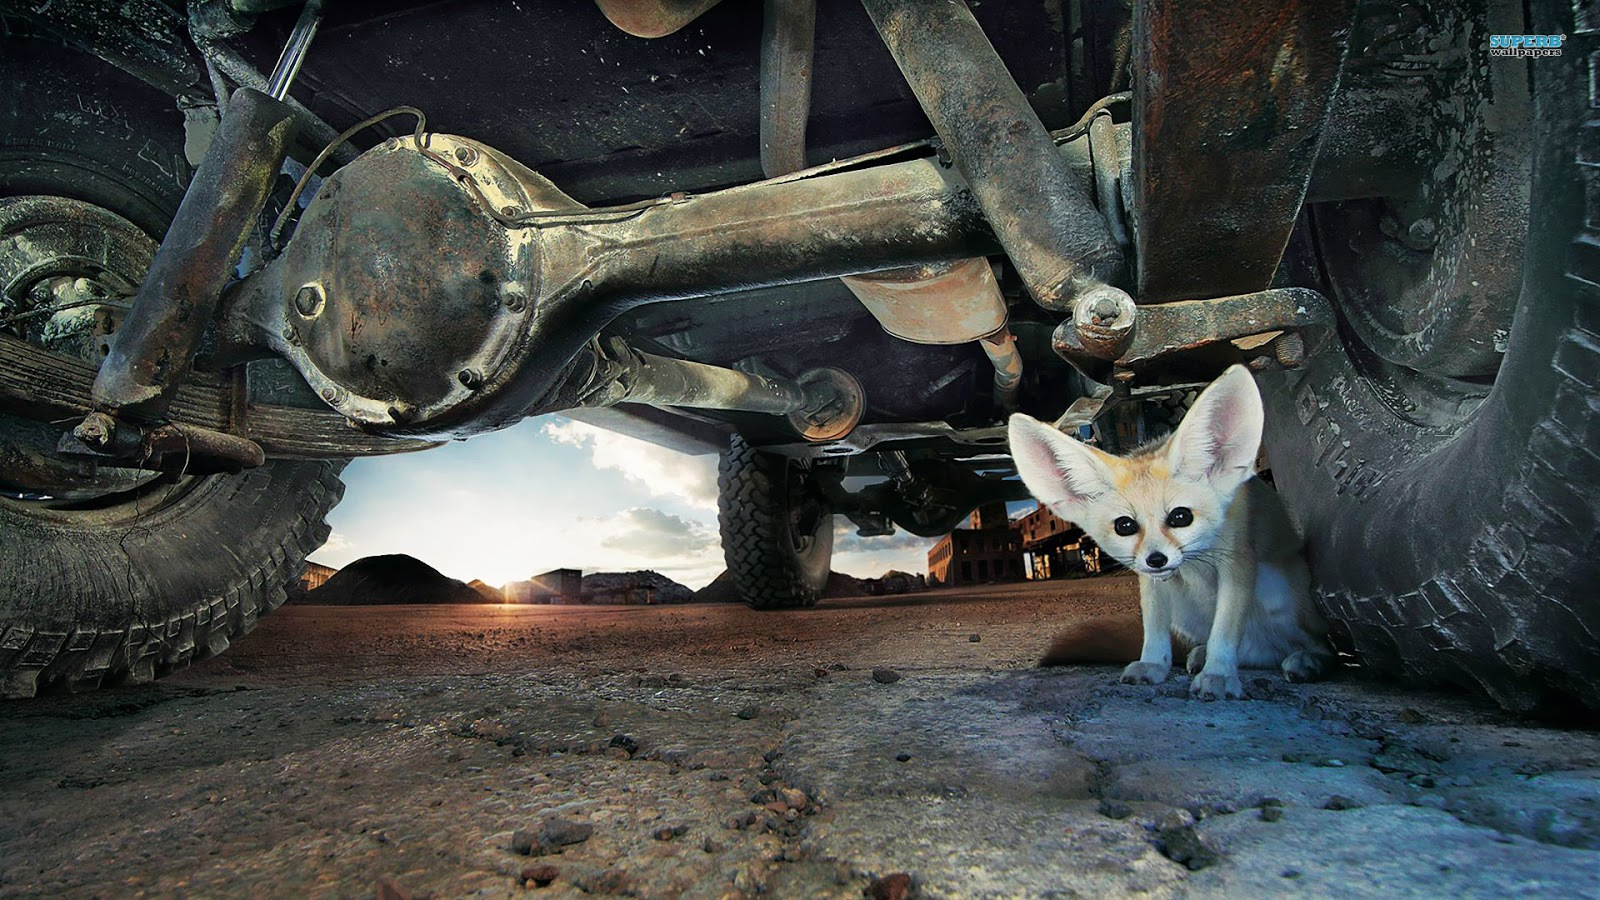 Hd Fennec Fox Wallpapers Fun Animals Wiki Videos Pictures Stories